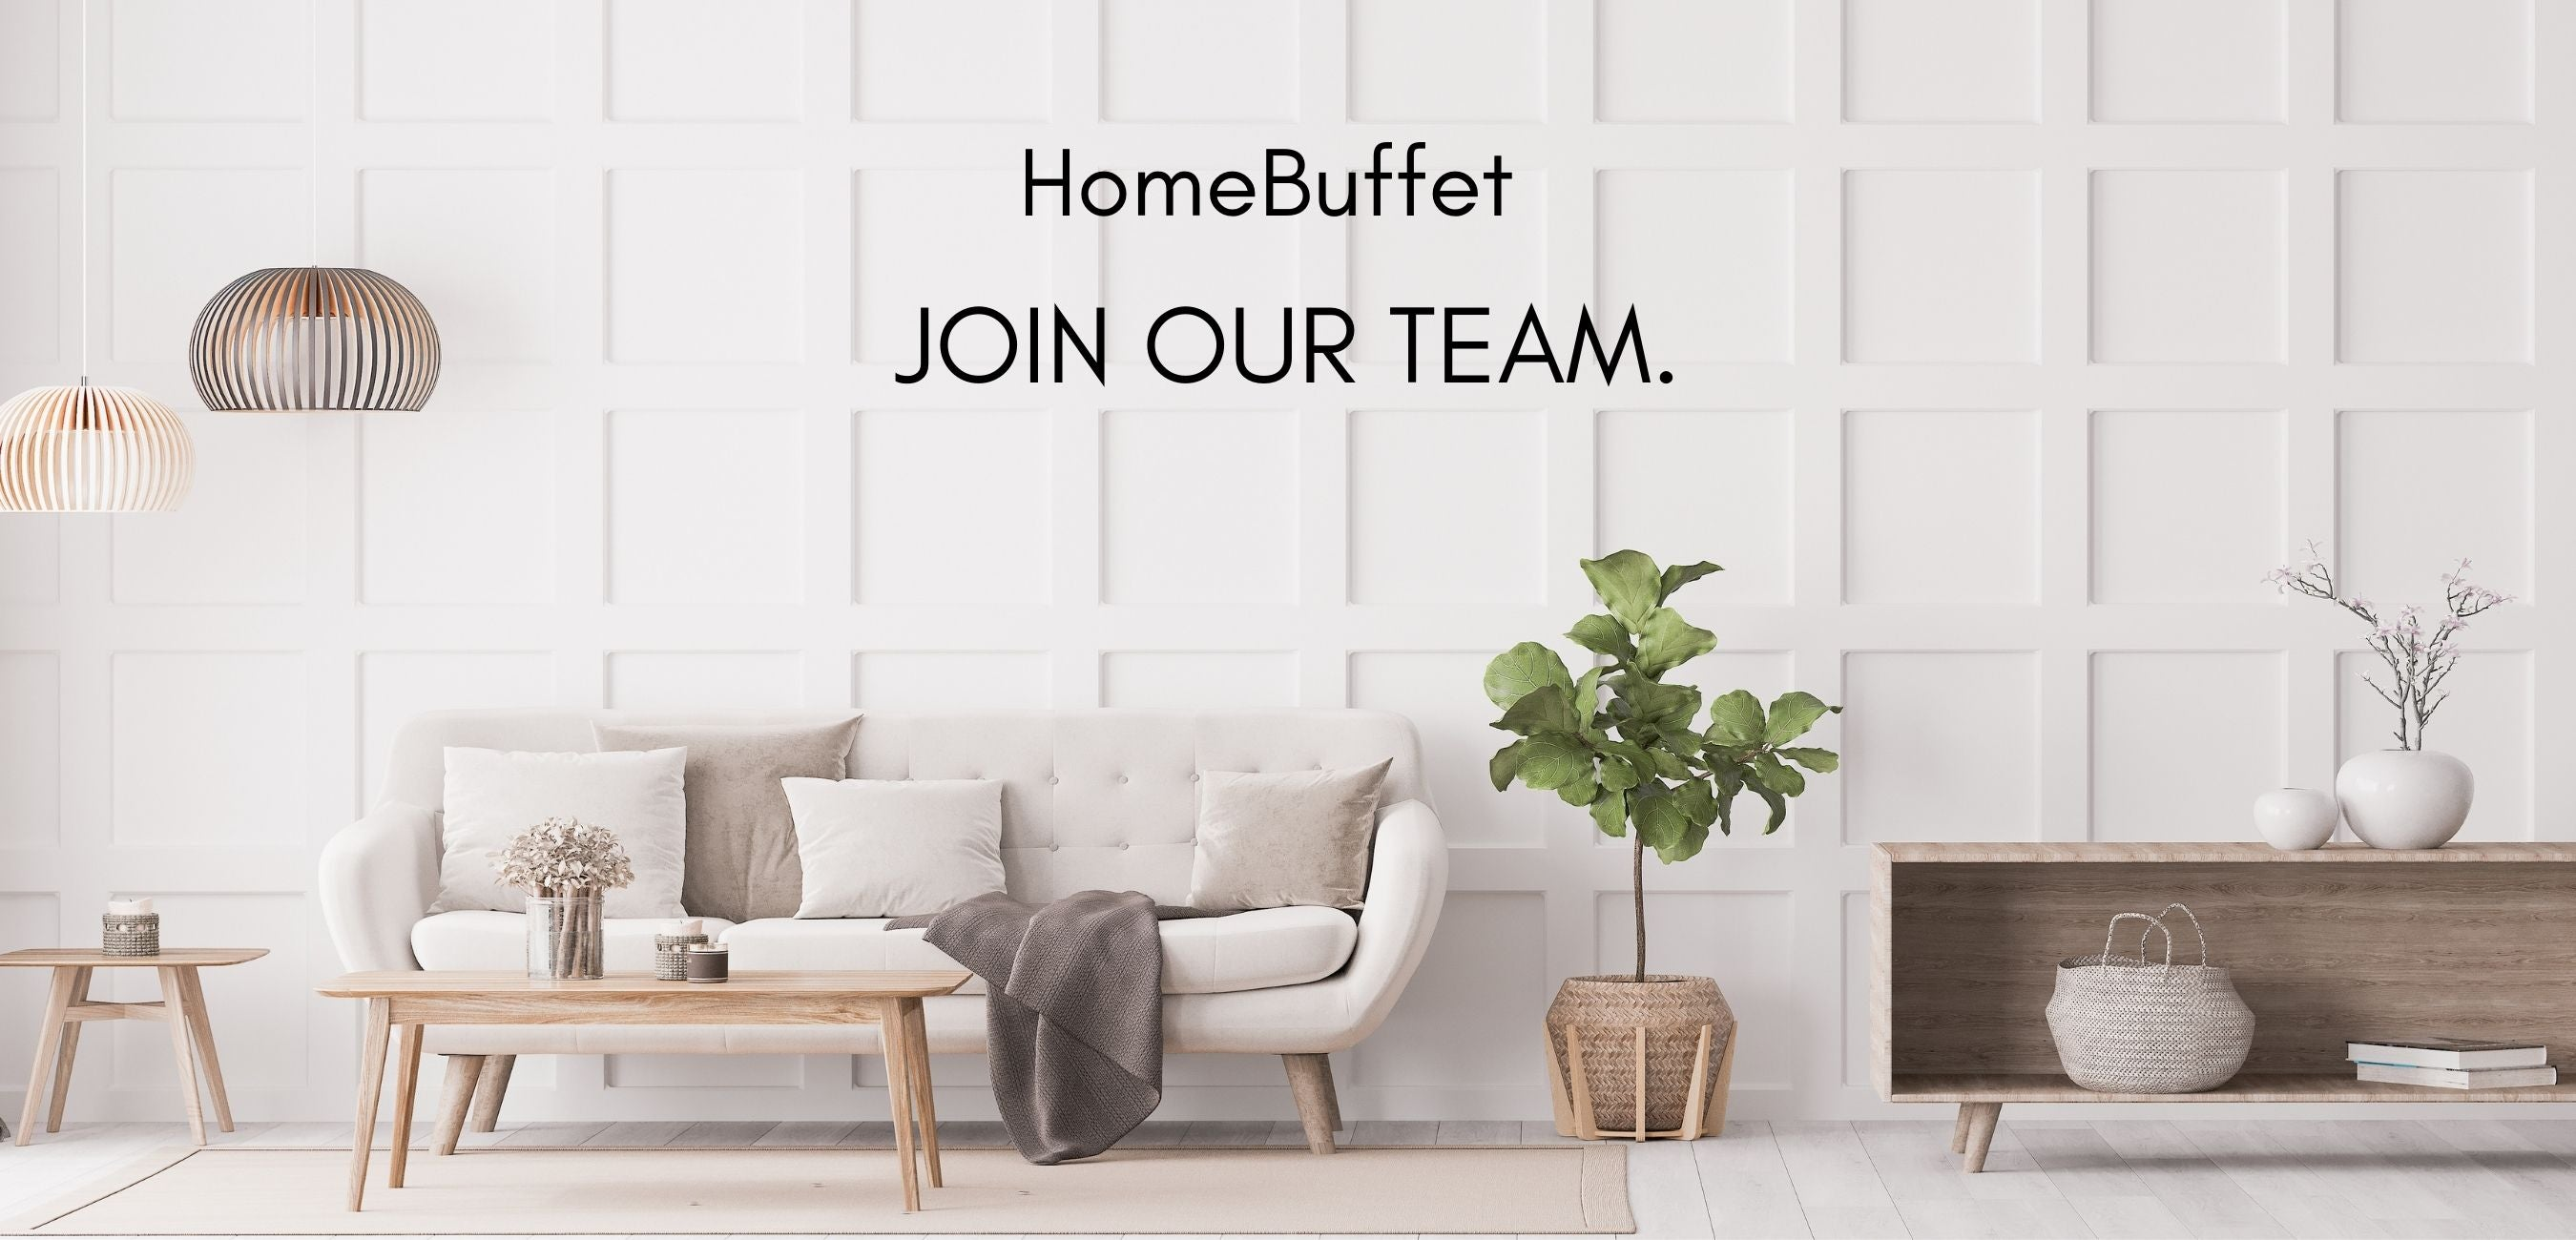 Home Buffet Join Our Team